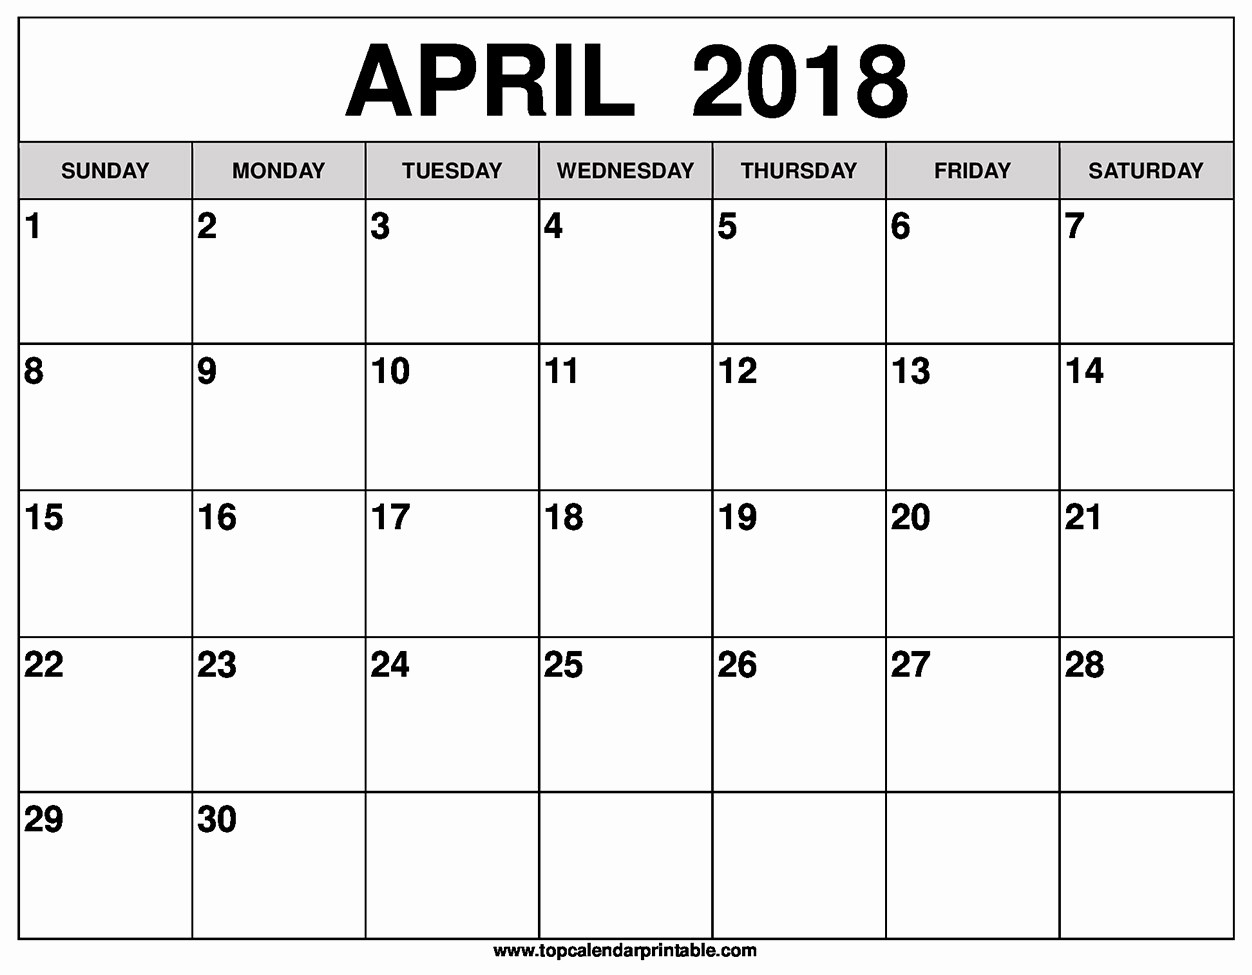 Blank April 2018 Calendar Template Fresh Blank April 2018 Calendar Printable